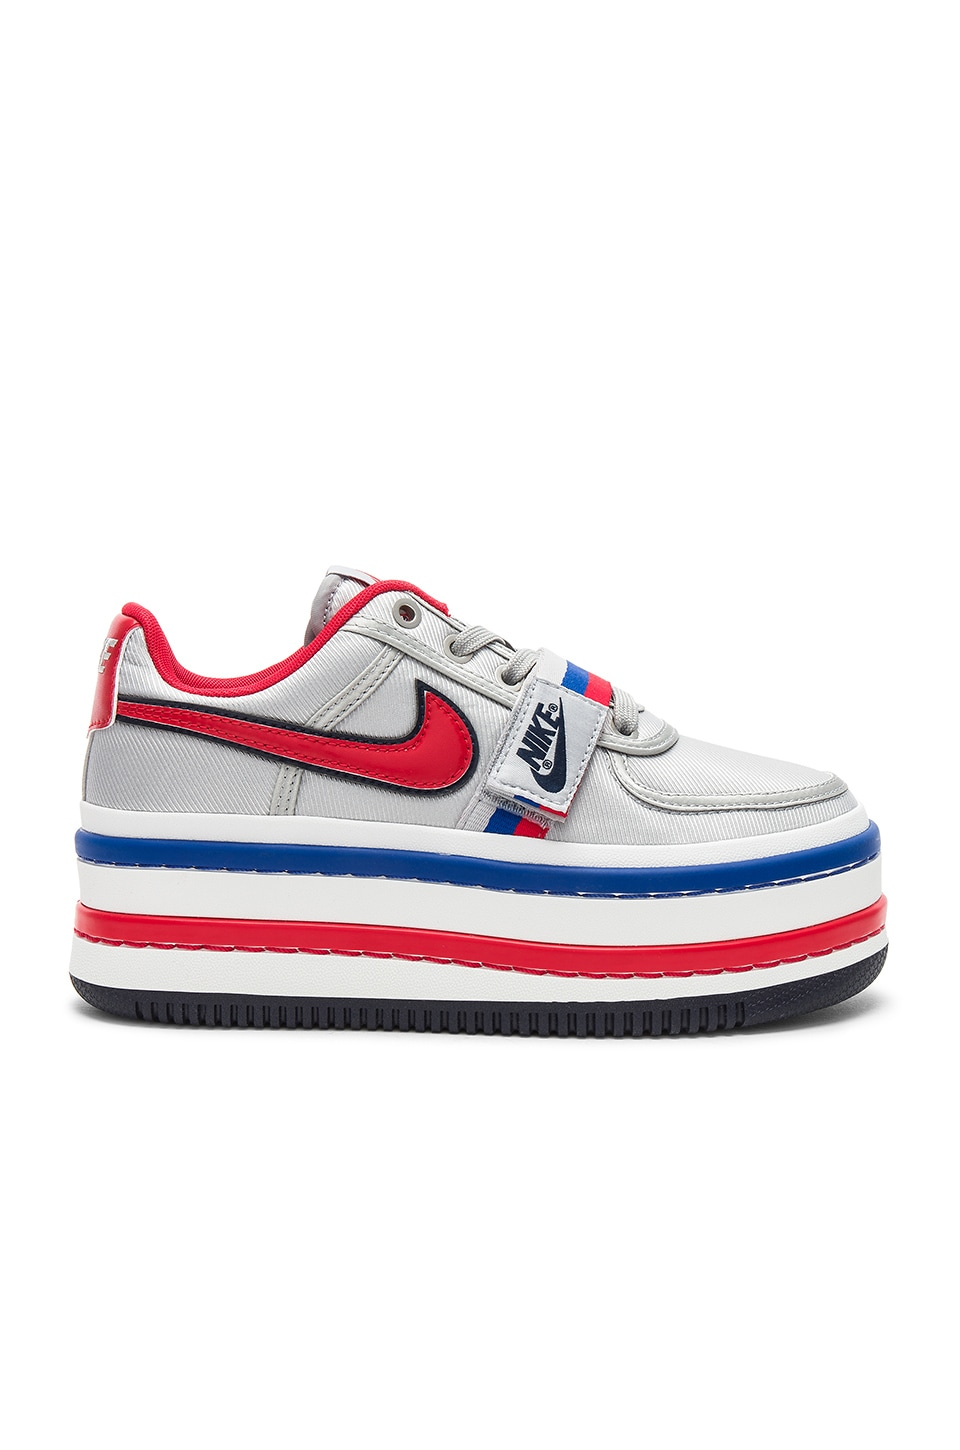 8fed7430ad4450 Nike Vandal 2K Platform Sneaker in Metallic Silver   University Red ...